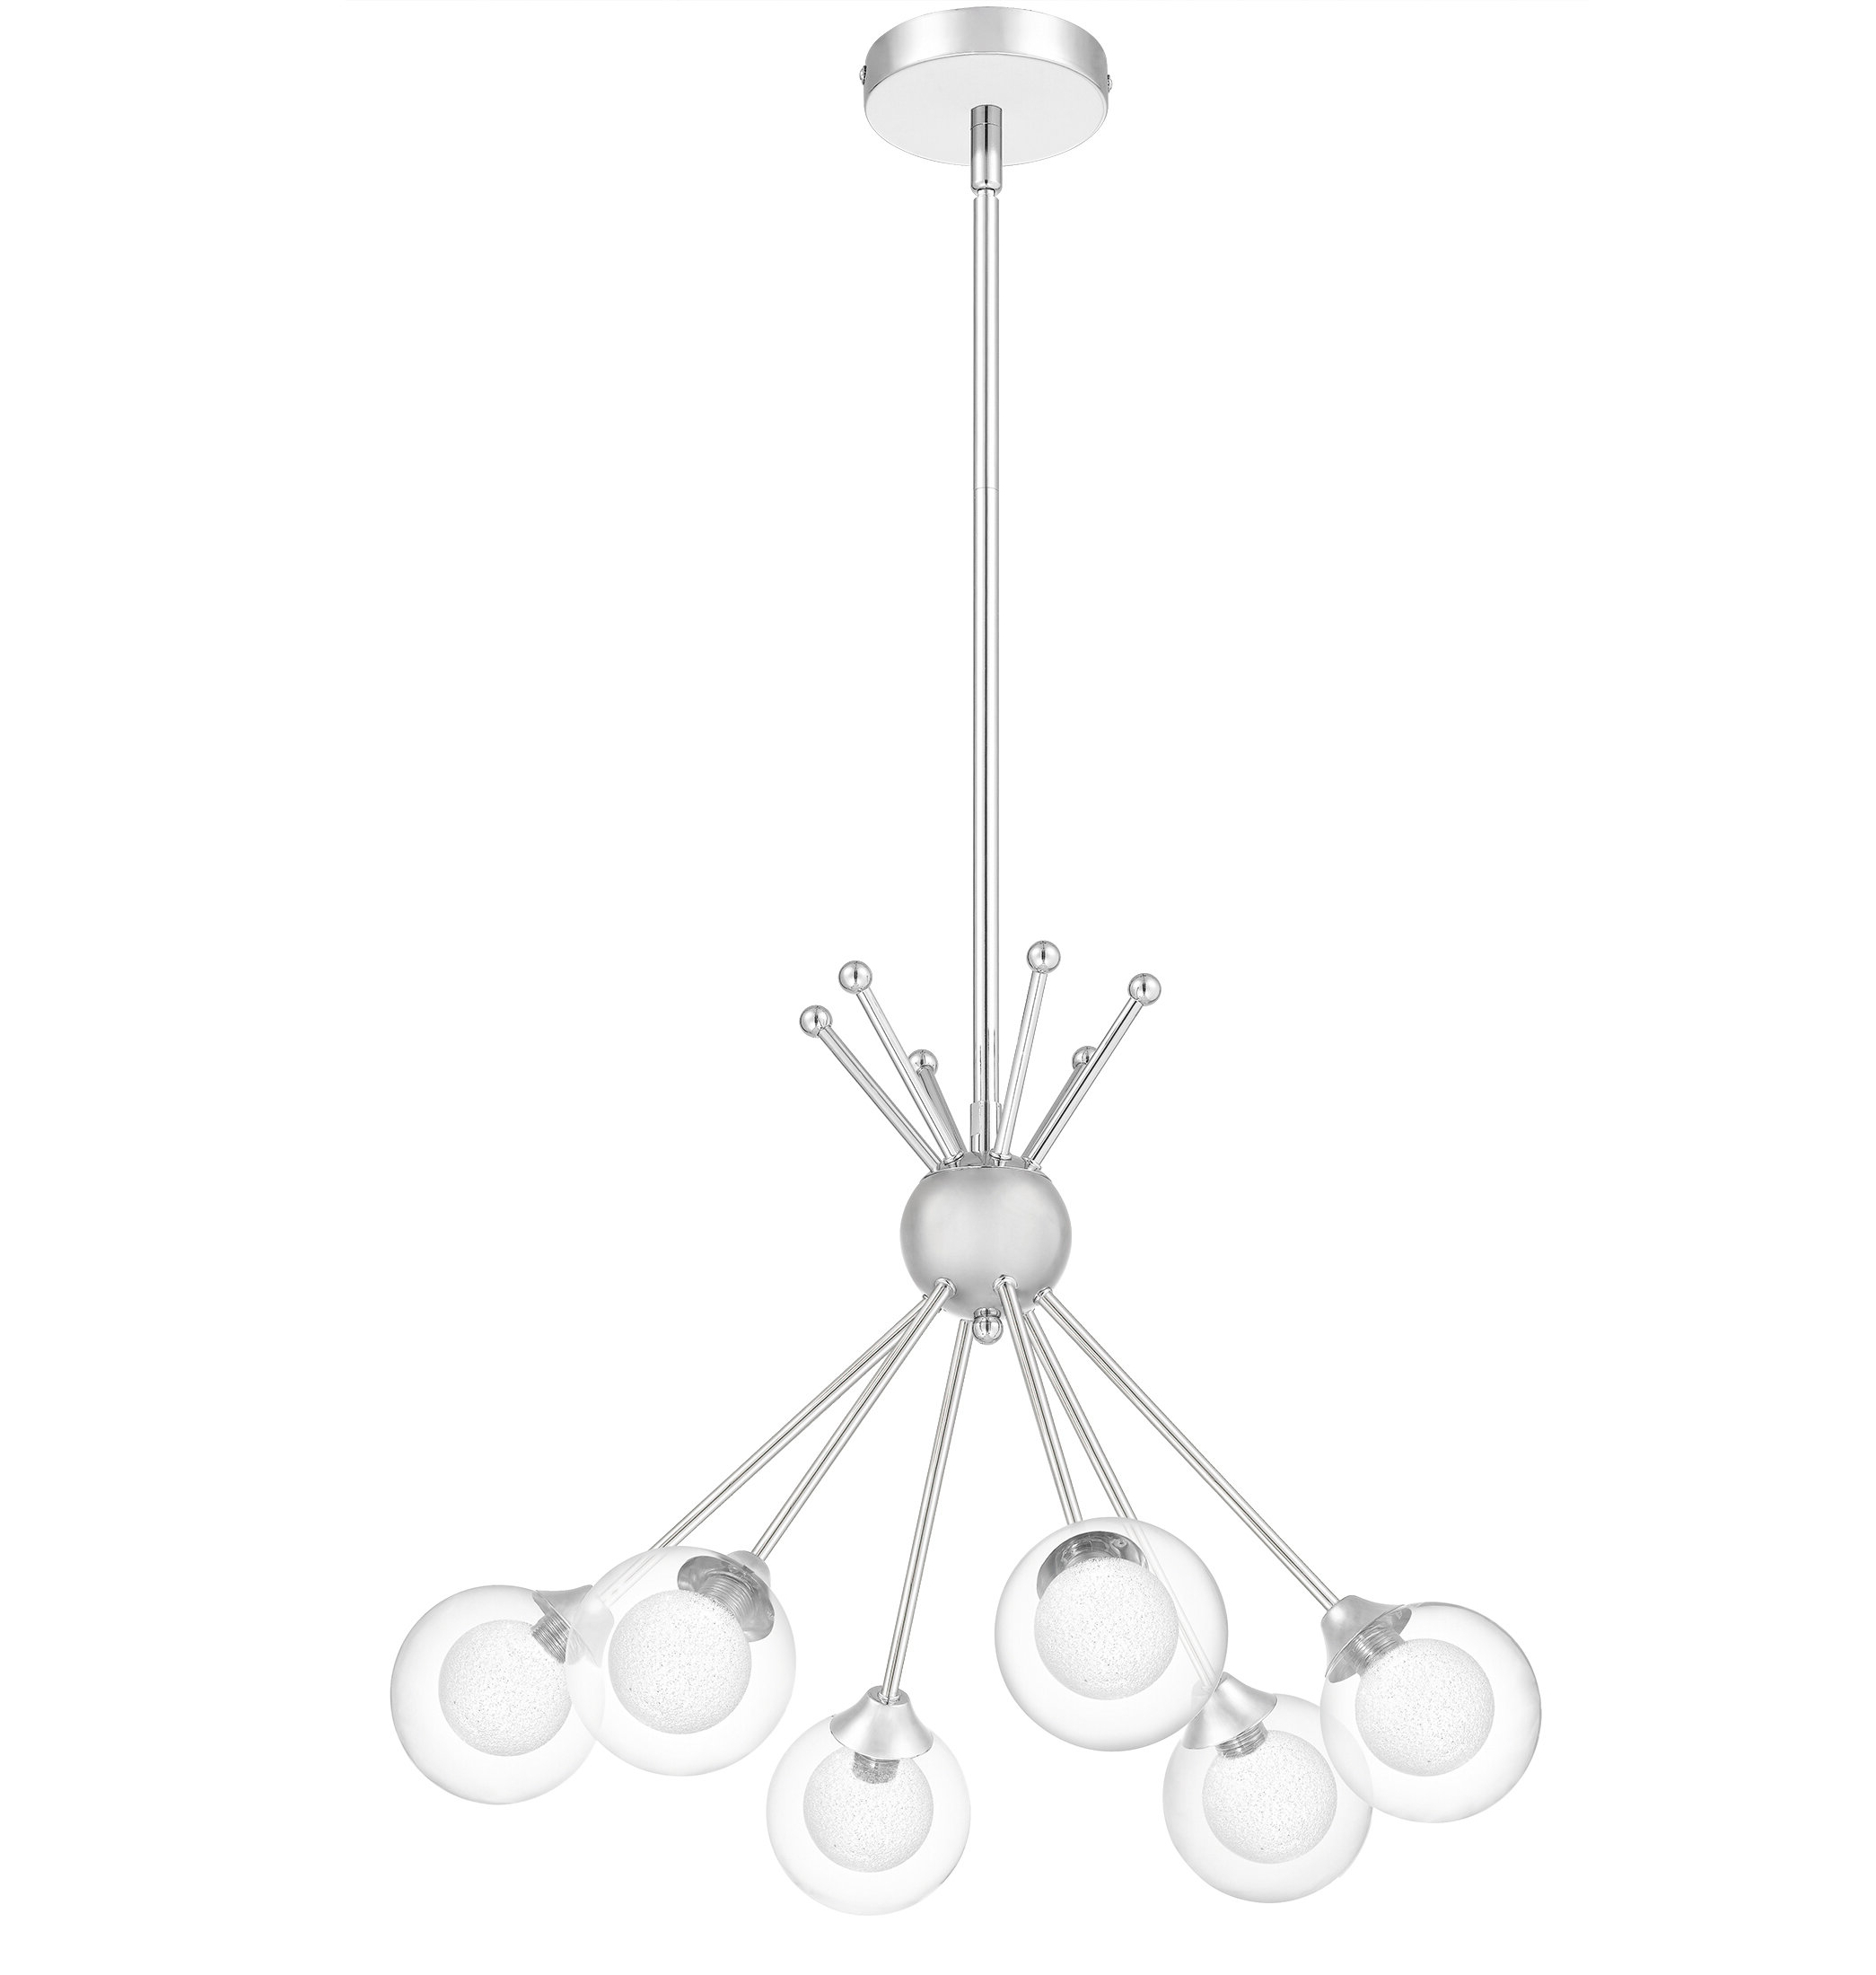 Current Rossana 6 Light Sputnik Chandelier With Silvia 6 Light Sputnik Chandeliers (Gallery 8 of 20)